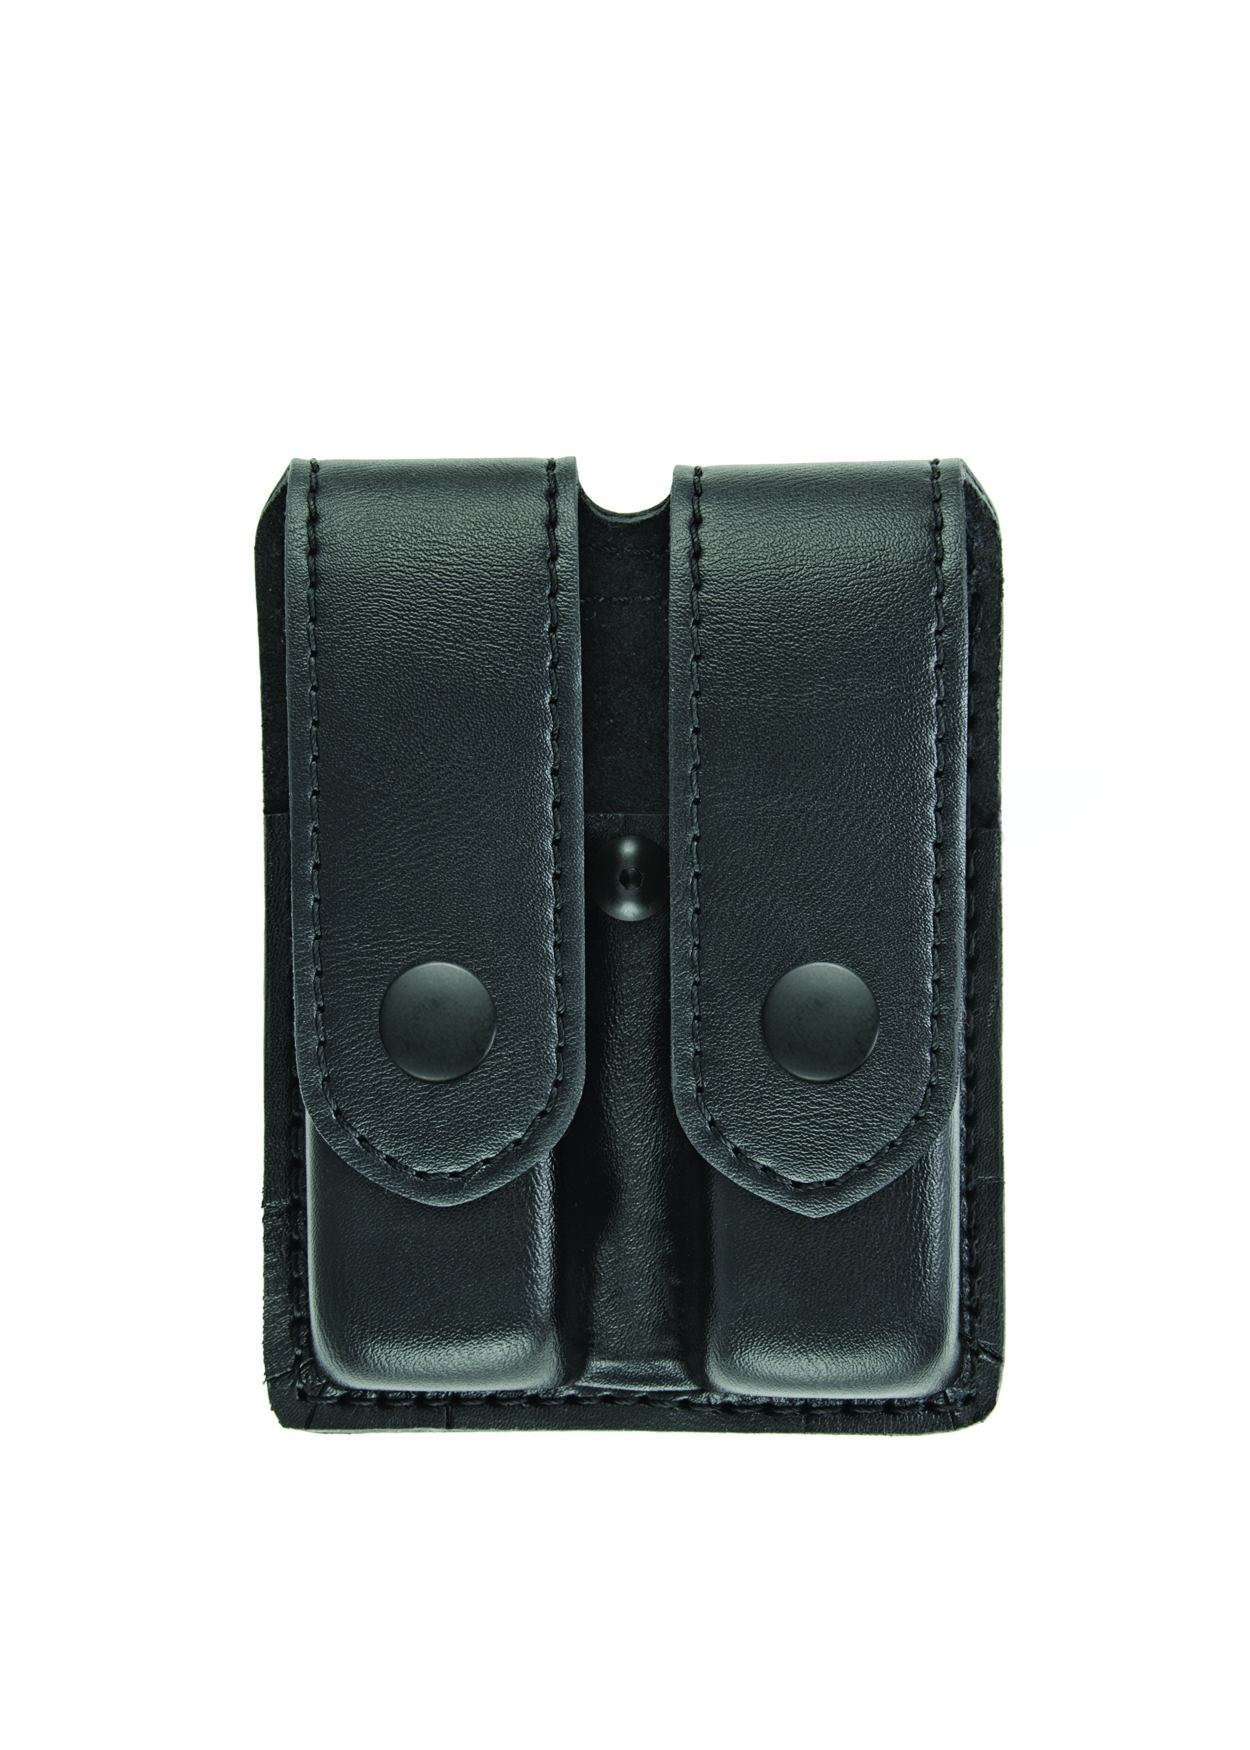 Double Magazine Case, Medium, AirTek, Smooth, Black Snaps-